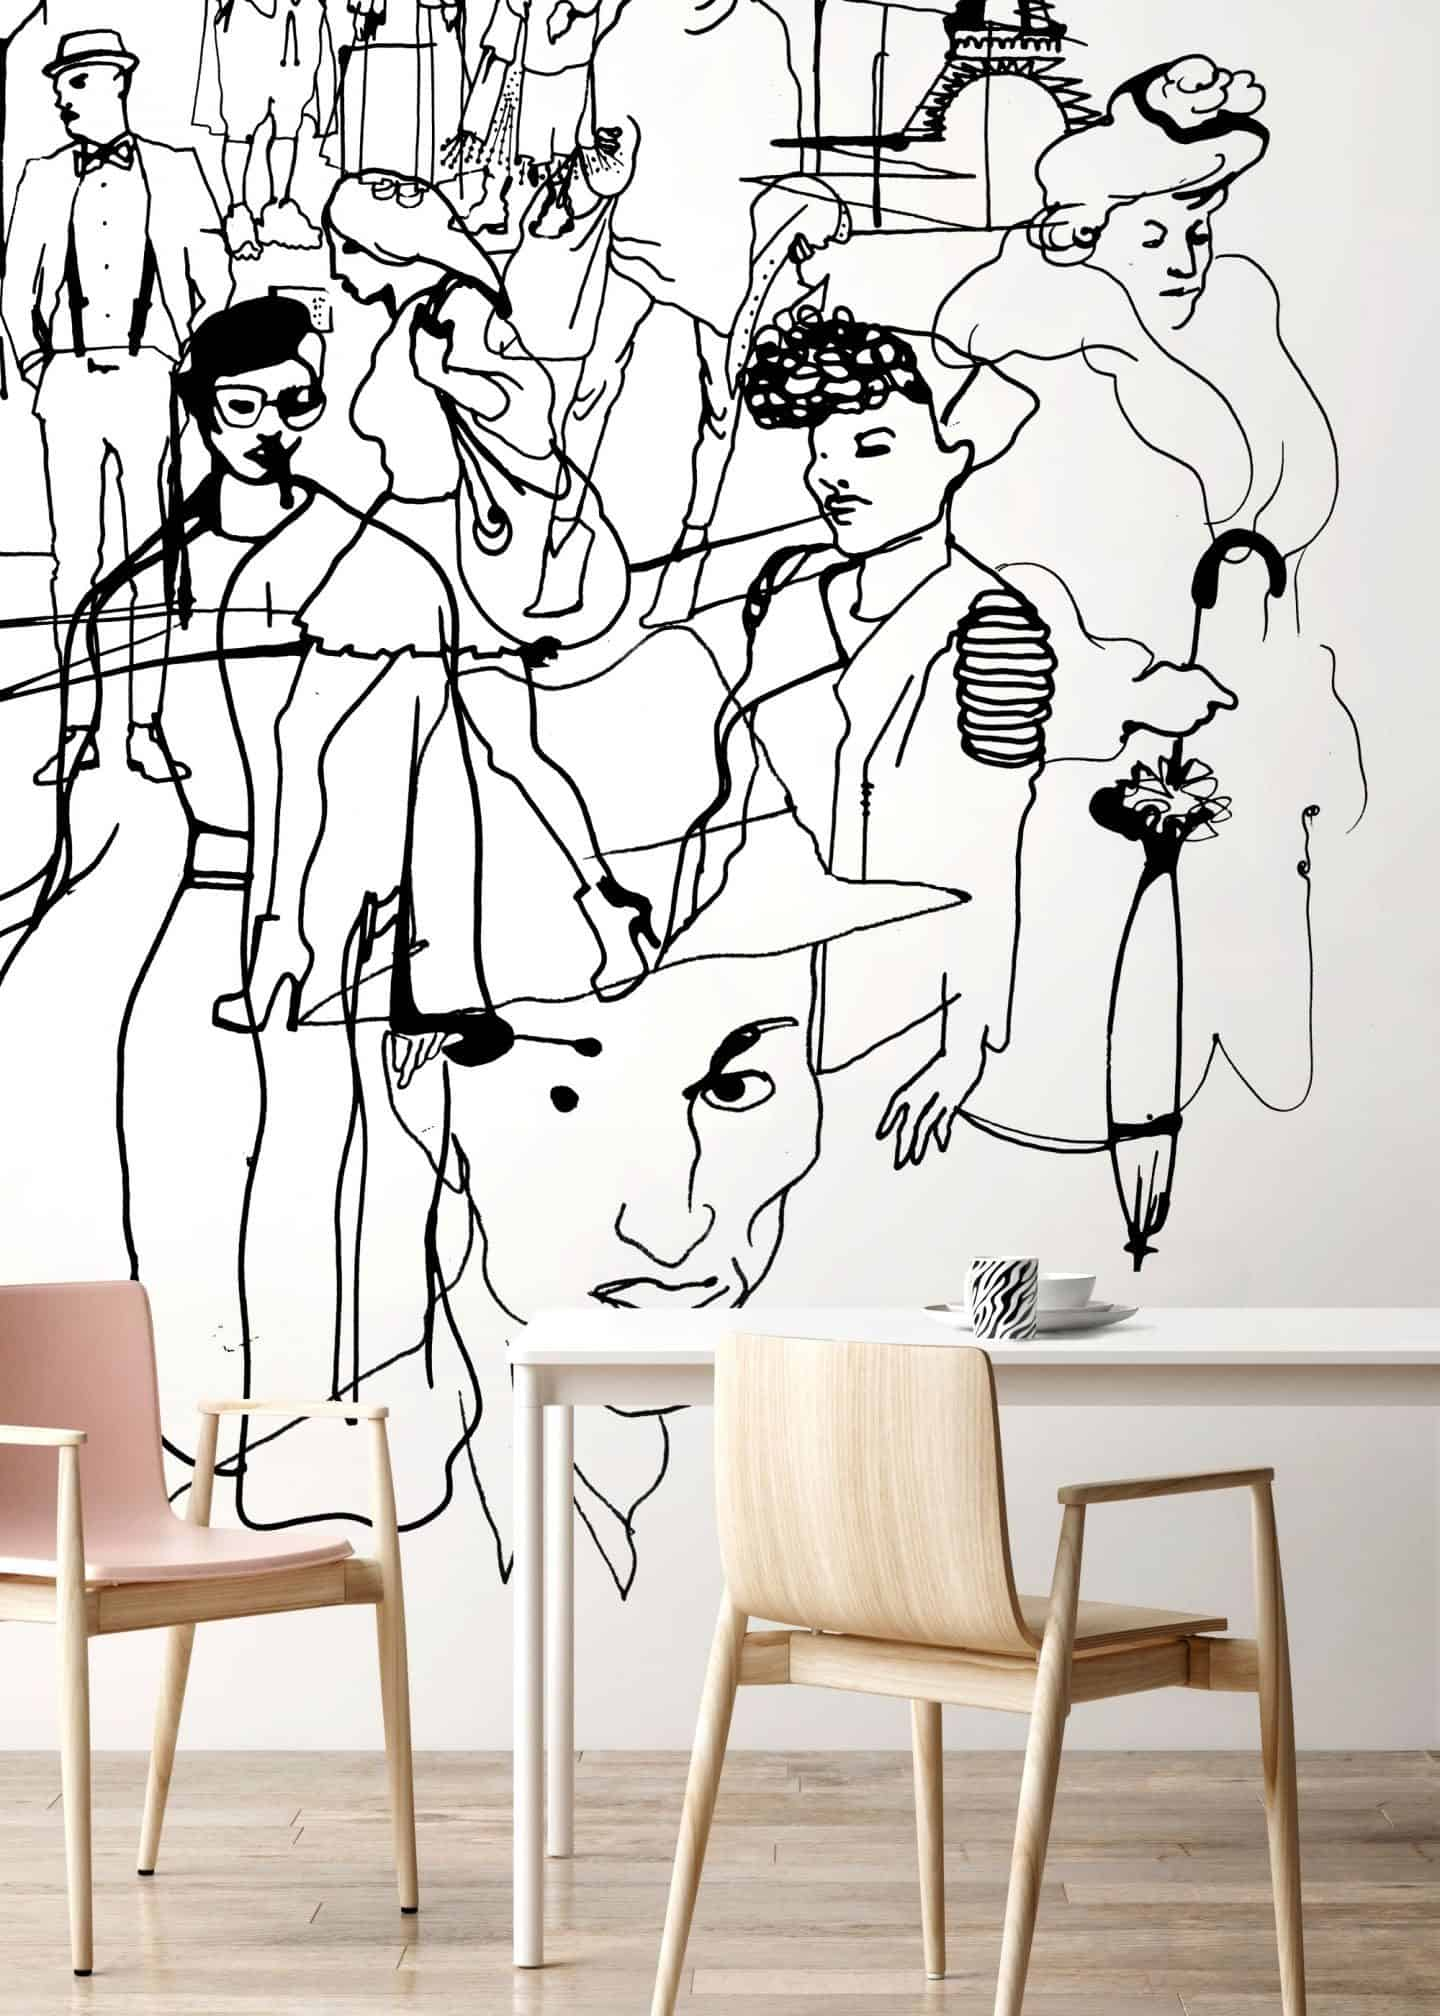 Paris, a black and white fashion illustration by Stina Wirsén available as a illustrated wallpaper from Photowall.